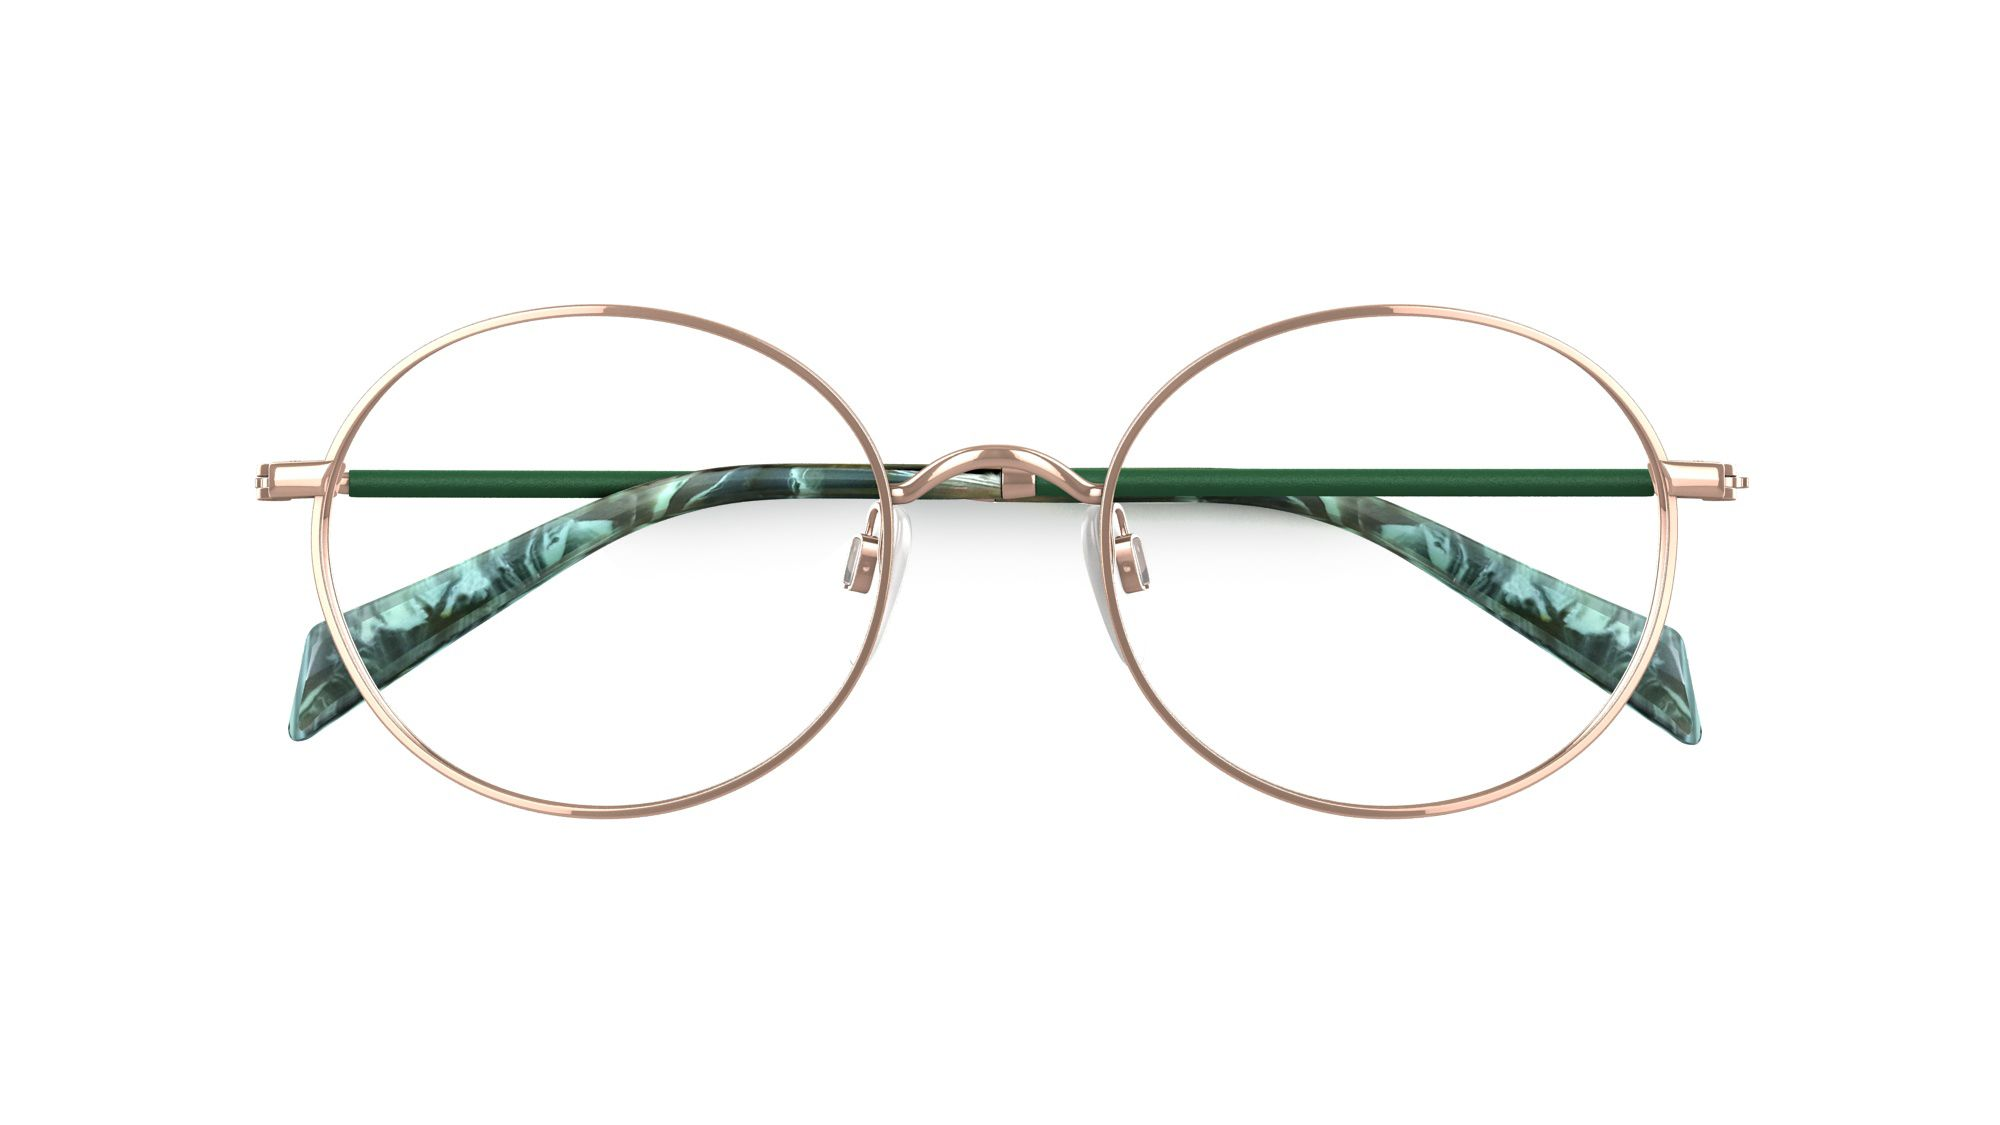 82d06c3ad06 Kylie Minogue glasses - KYLIE 07 £99